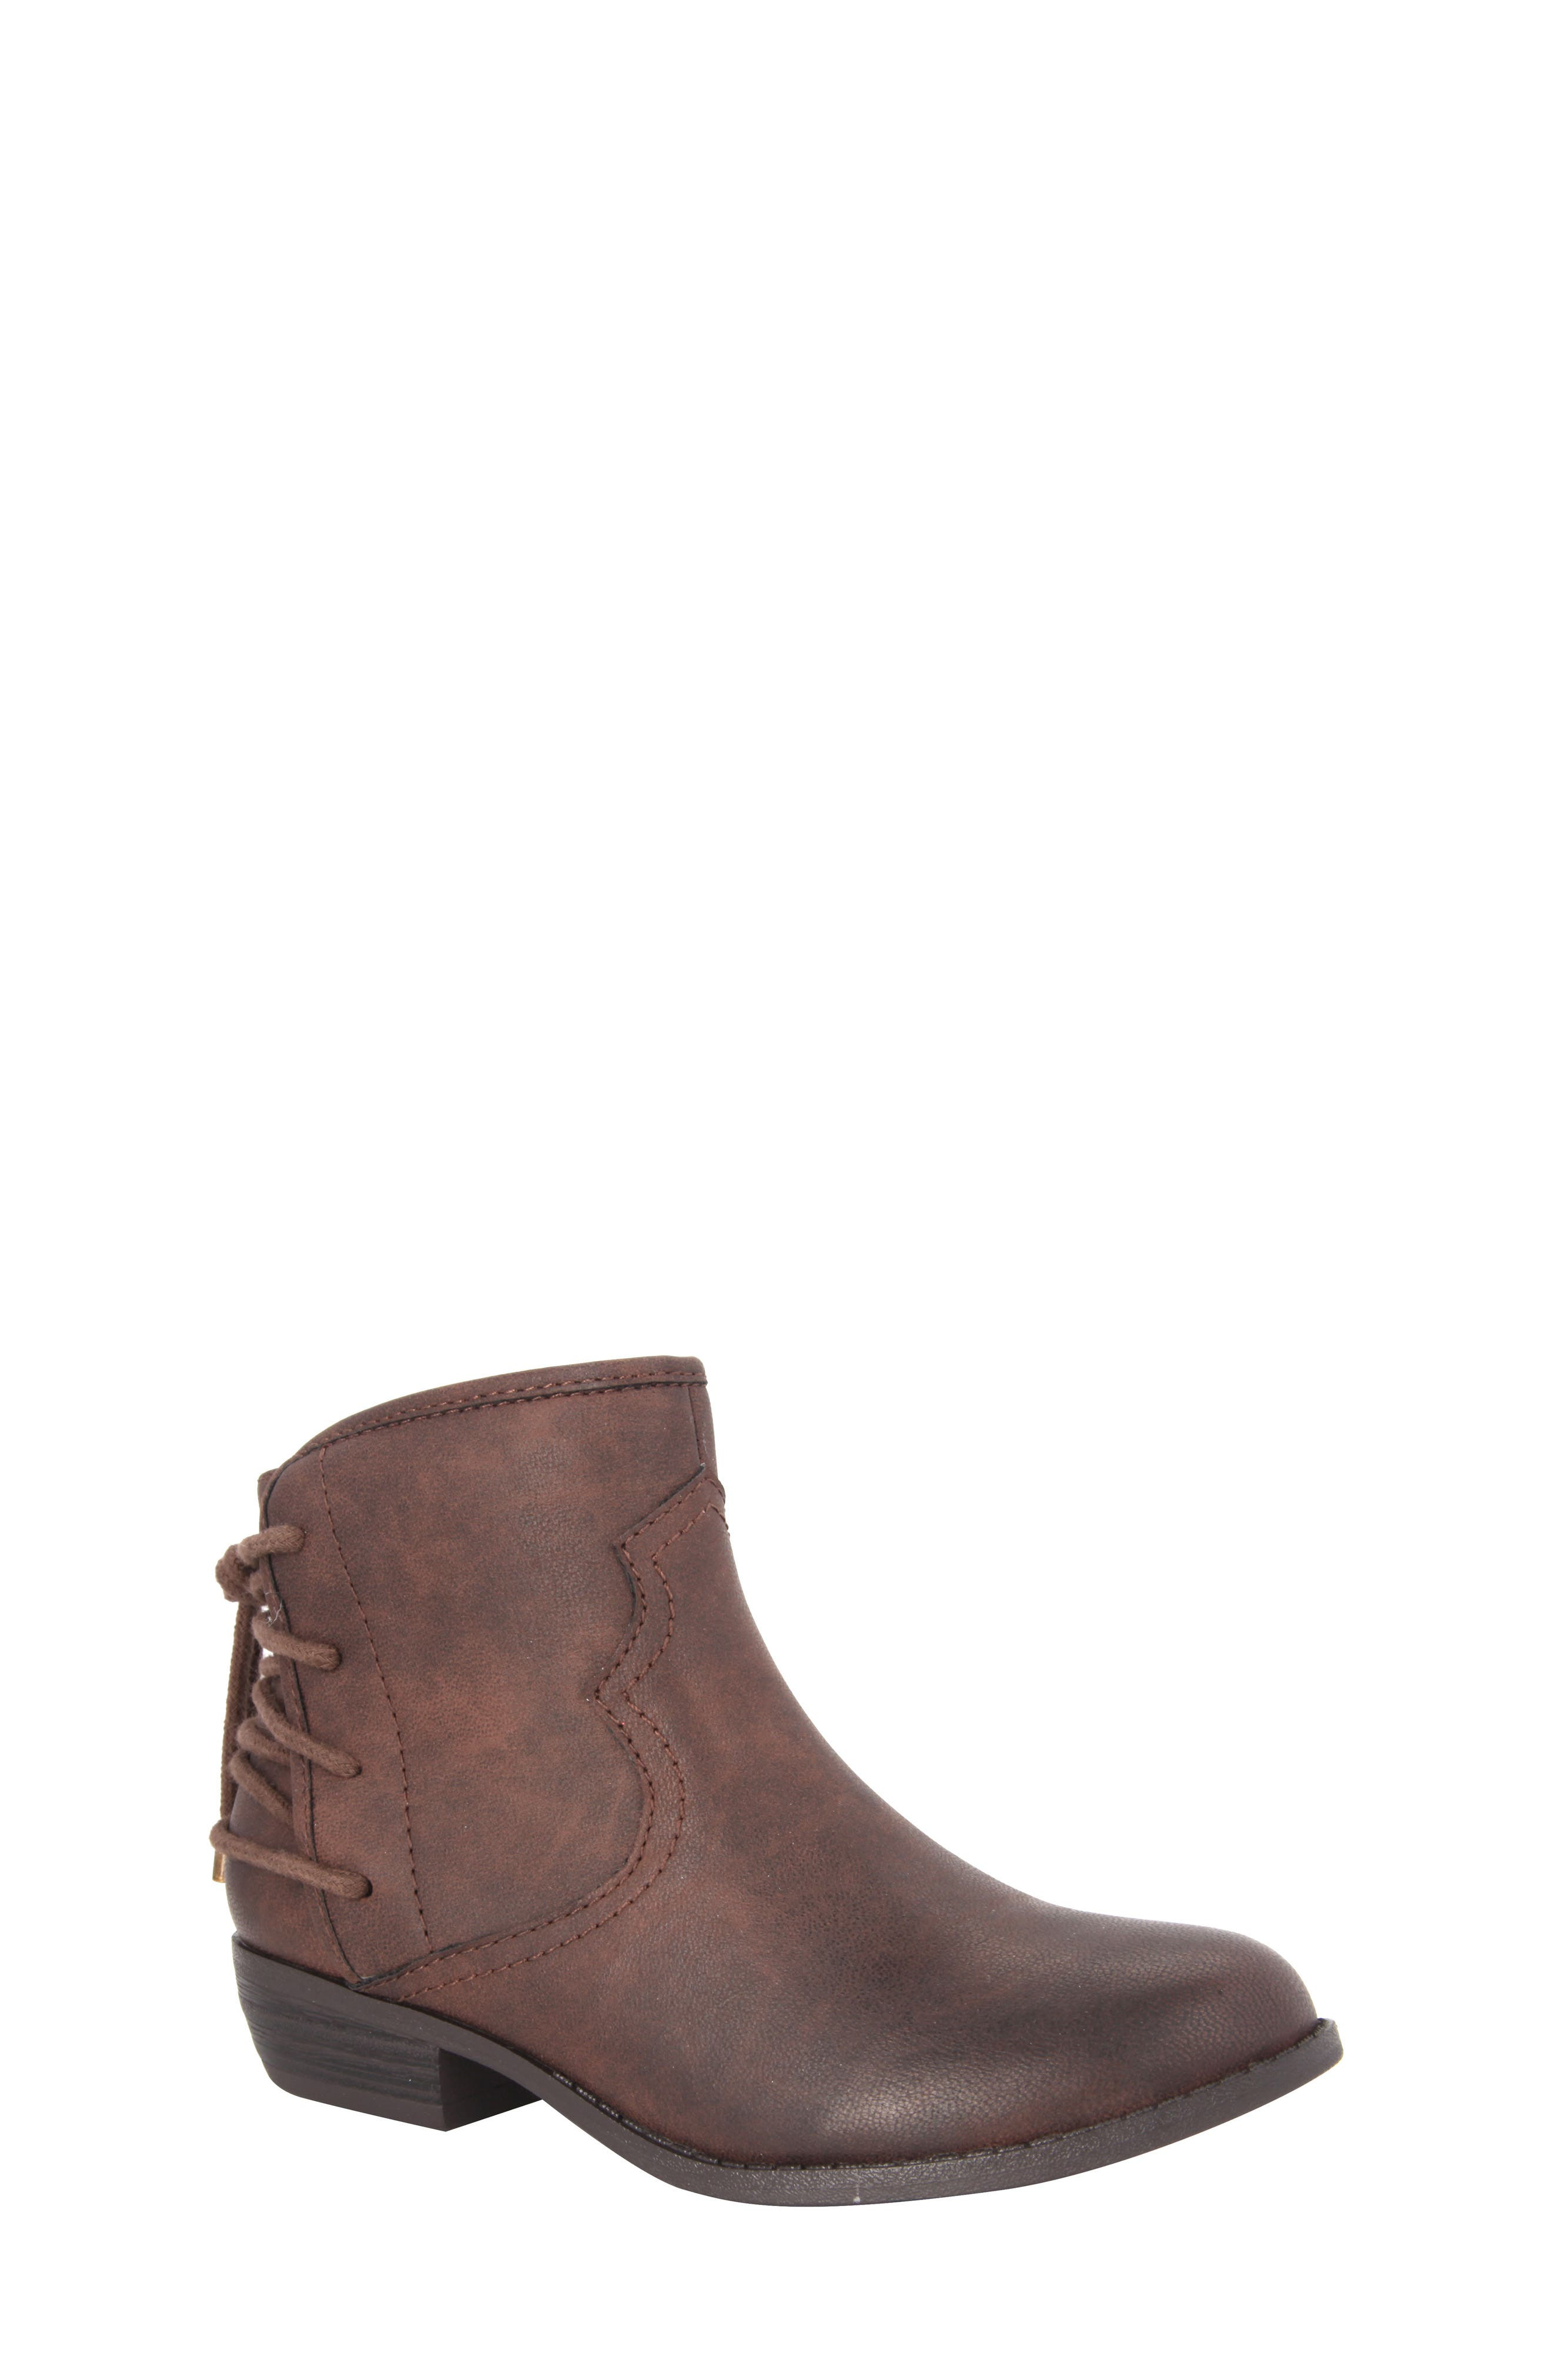 Evette Distressed Back-Lace Bootie,                         Main,                         color, Brown Faux Leather